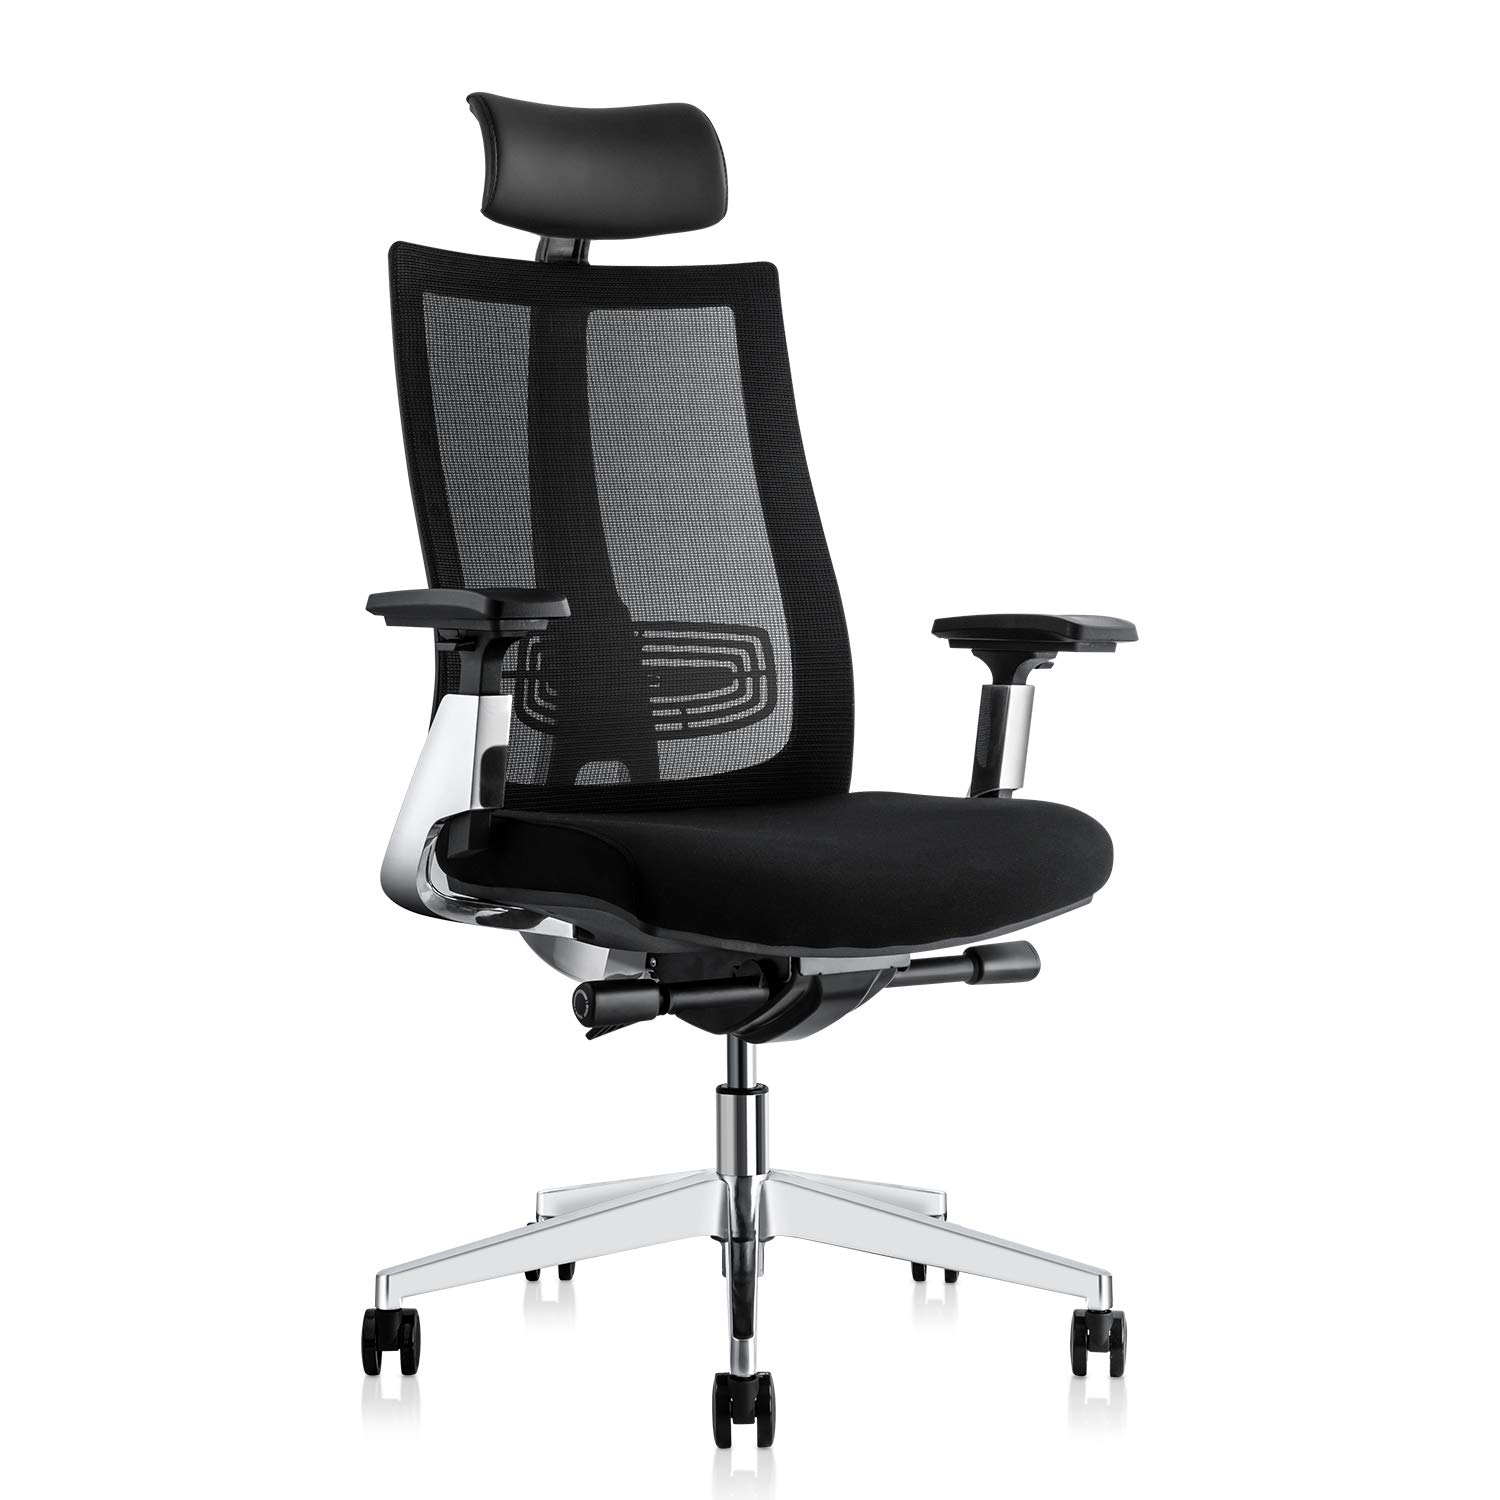 Gabrylly Office Chair Mesh Ergonomic Chair, Adjustable Computer Desk Chair, High-Back with 3D Armrest, Aluminum Alloy Frame, Lumbar Support and Comfortable Glide Seat(Black)